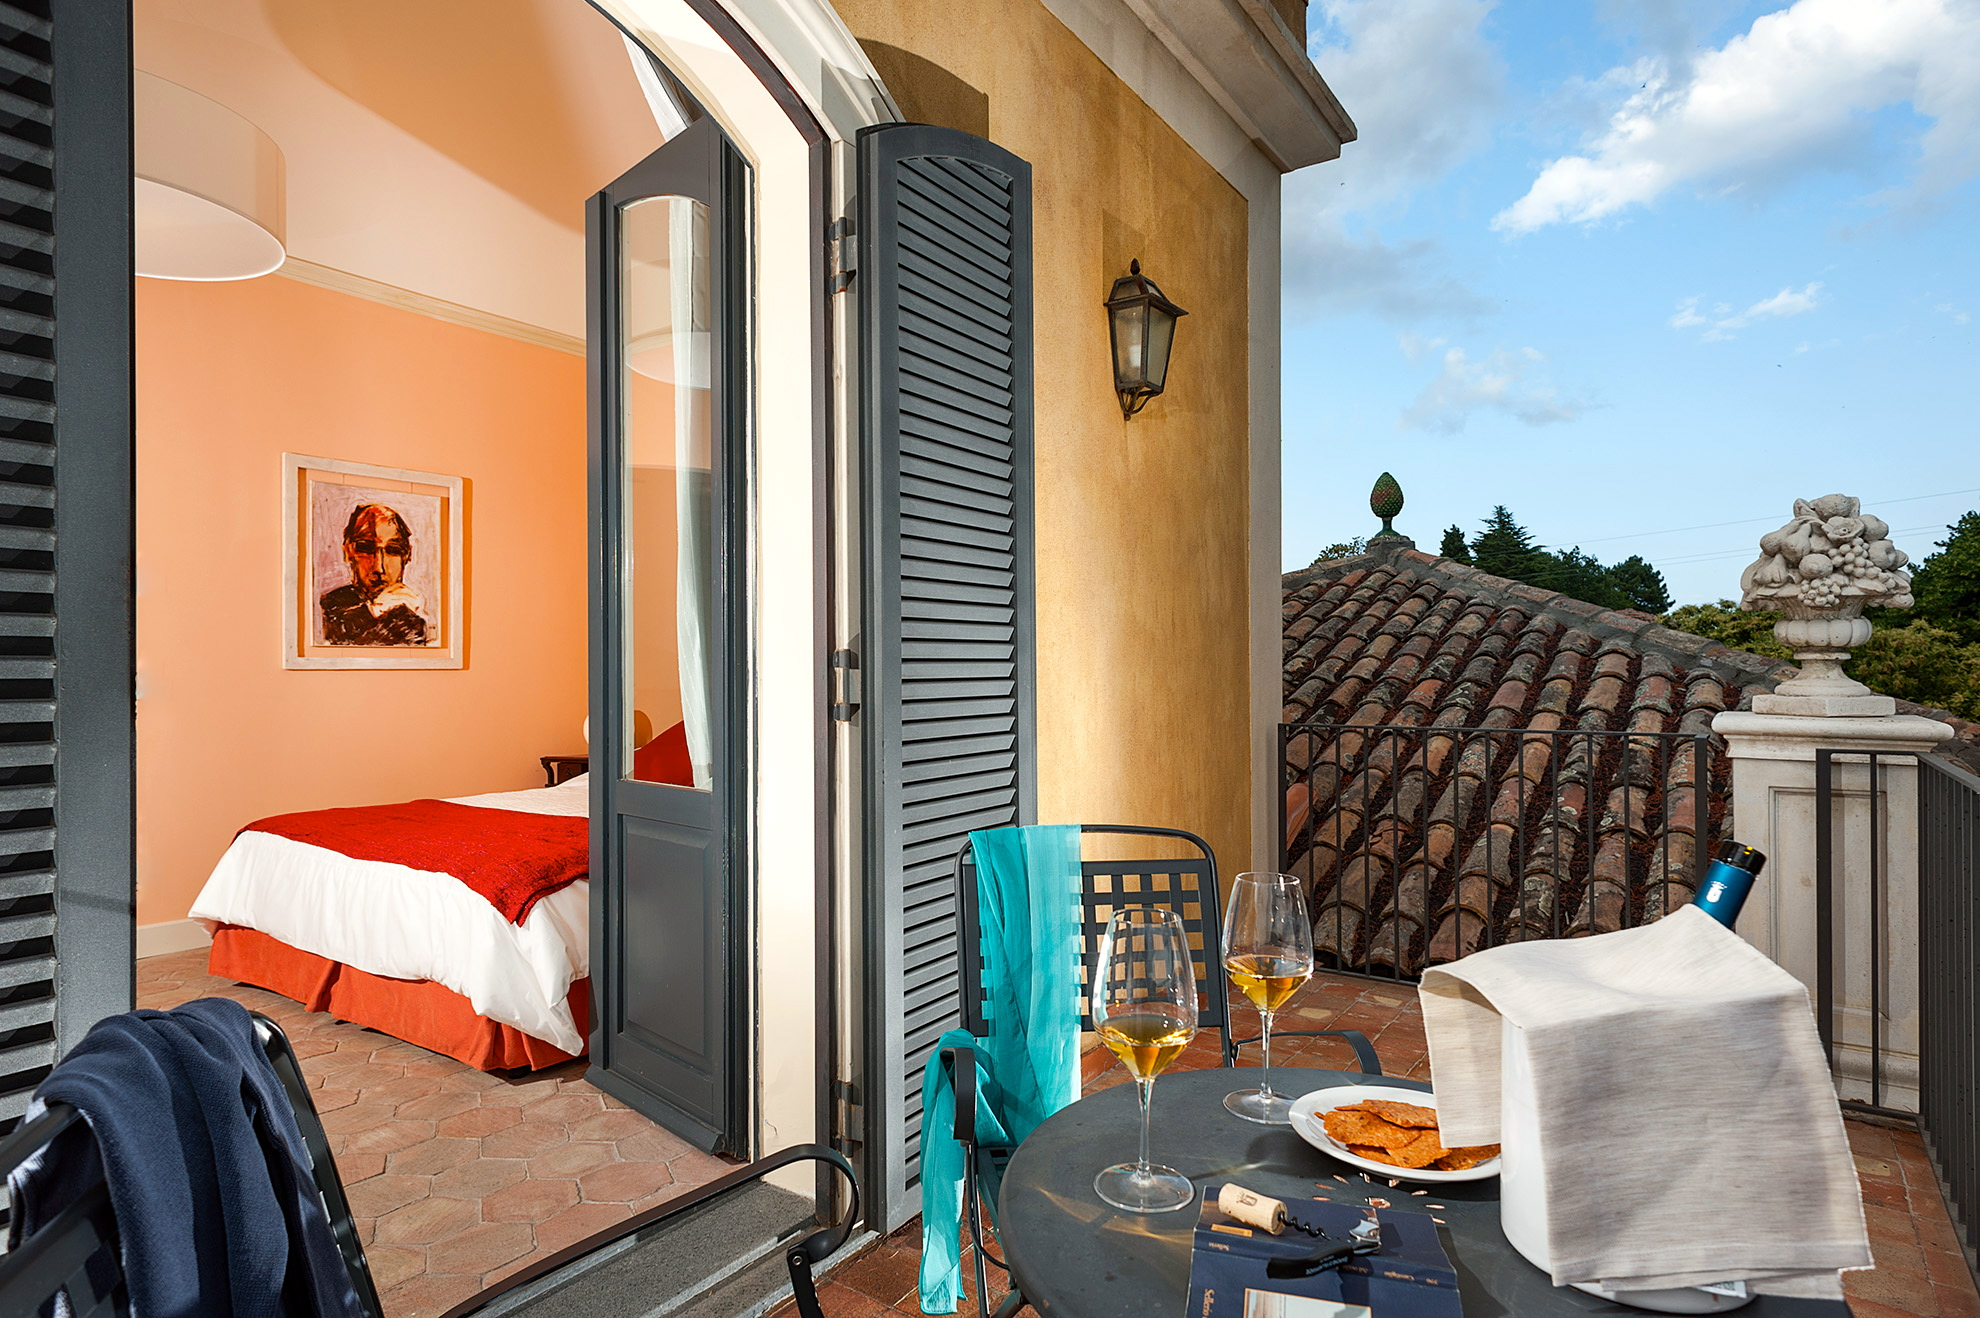 Luxury stay in sicily barone di villagrande review for Luxury stays